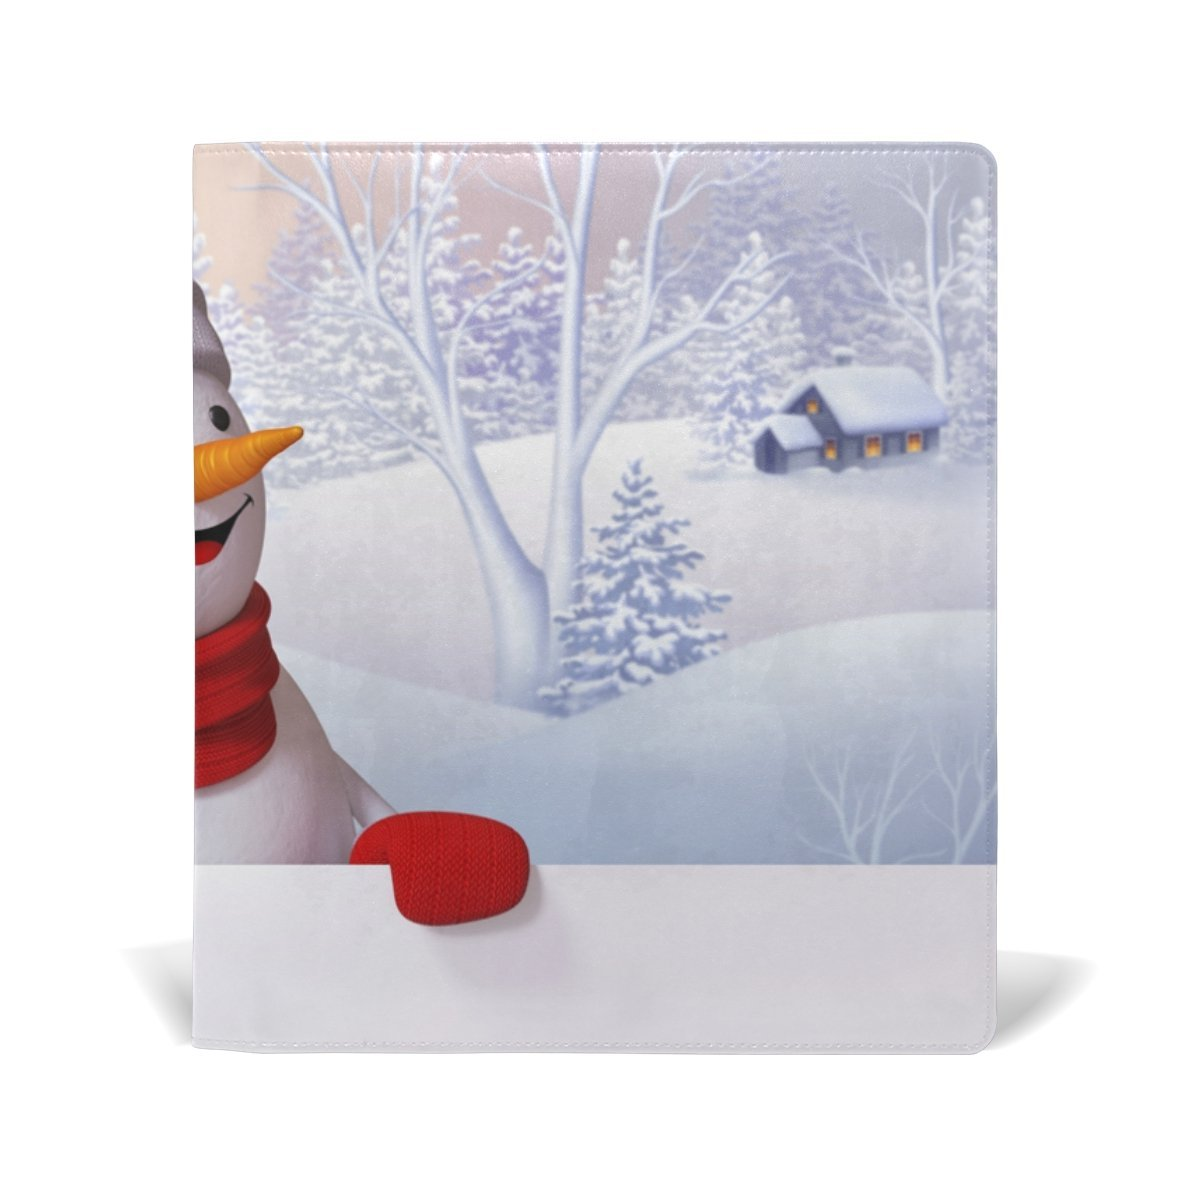 Sunlome Christmas Snowman Pattern Stretchable PU Leather Book Cover 9 x 11 Inches Fits for School Hardcover Textbooks